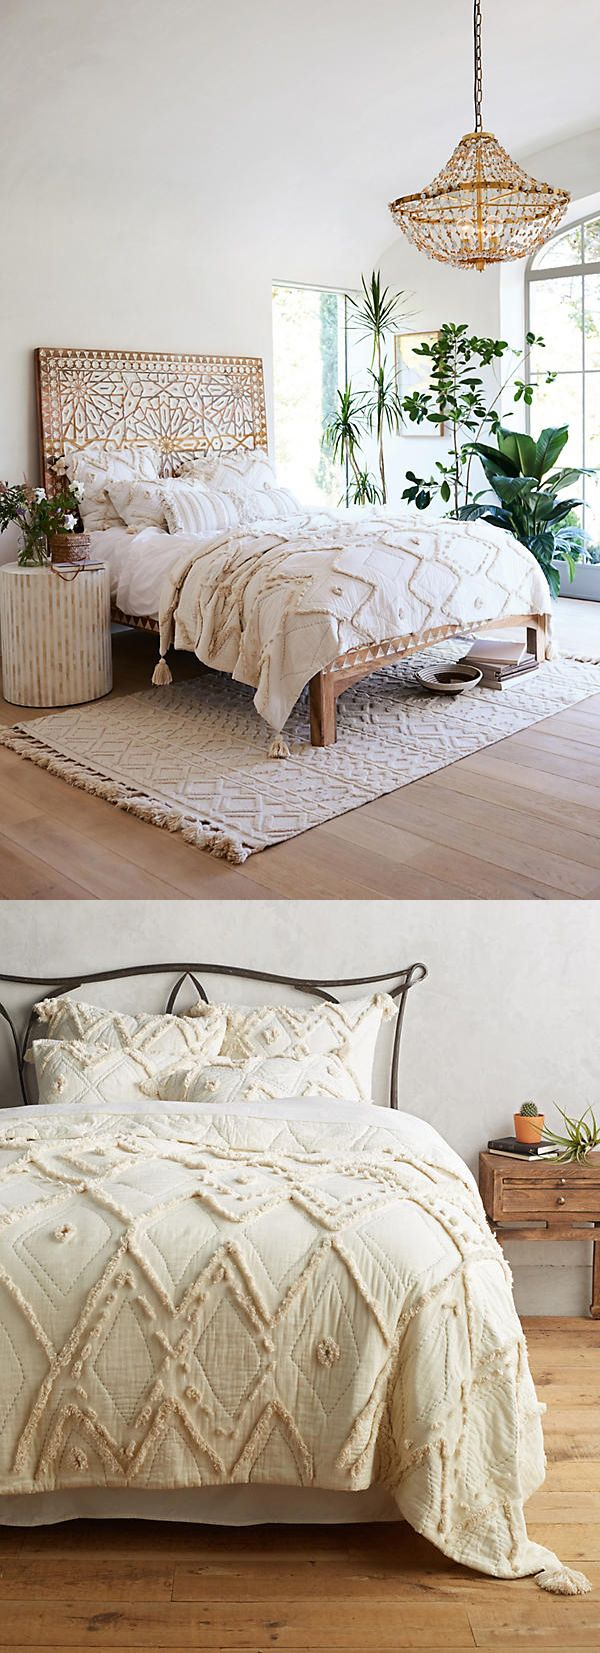 Best 25+ Anthropologie bedding ideas on Pinterest